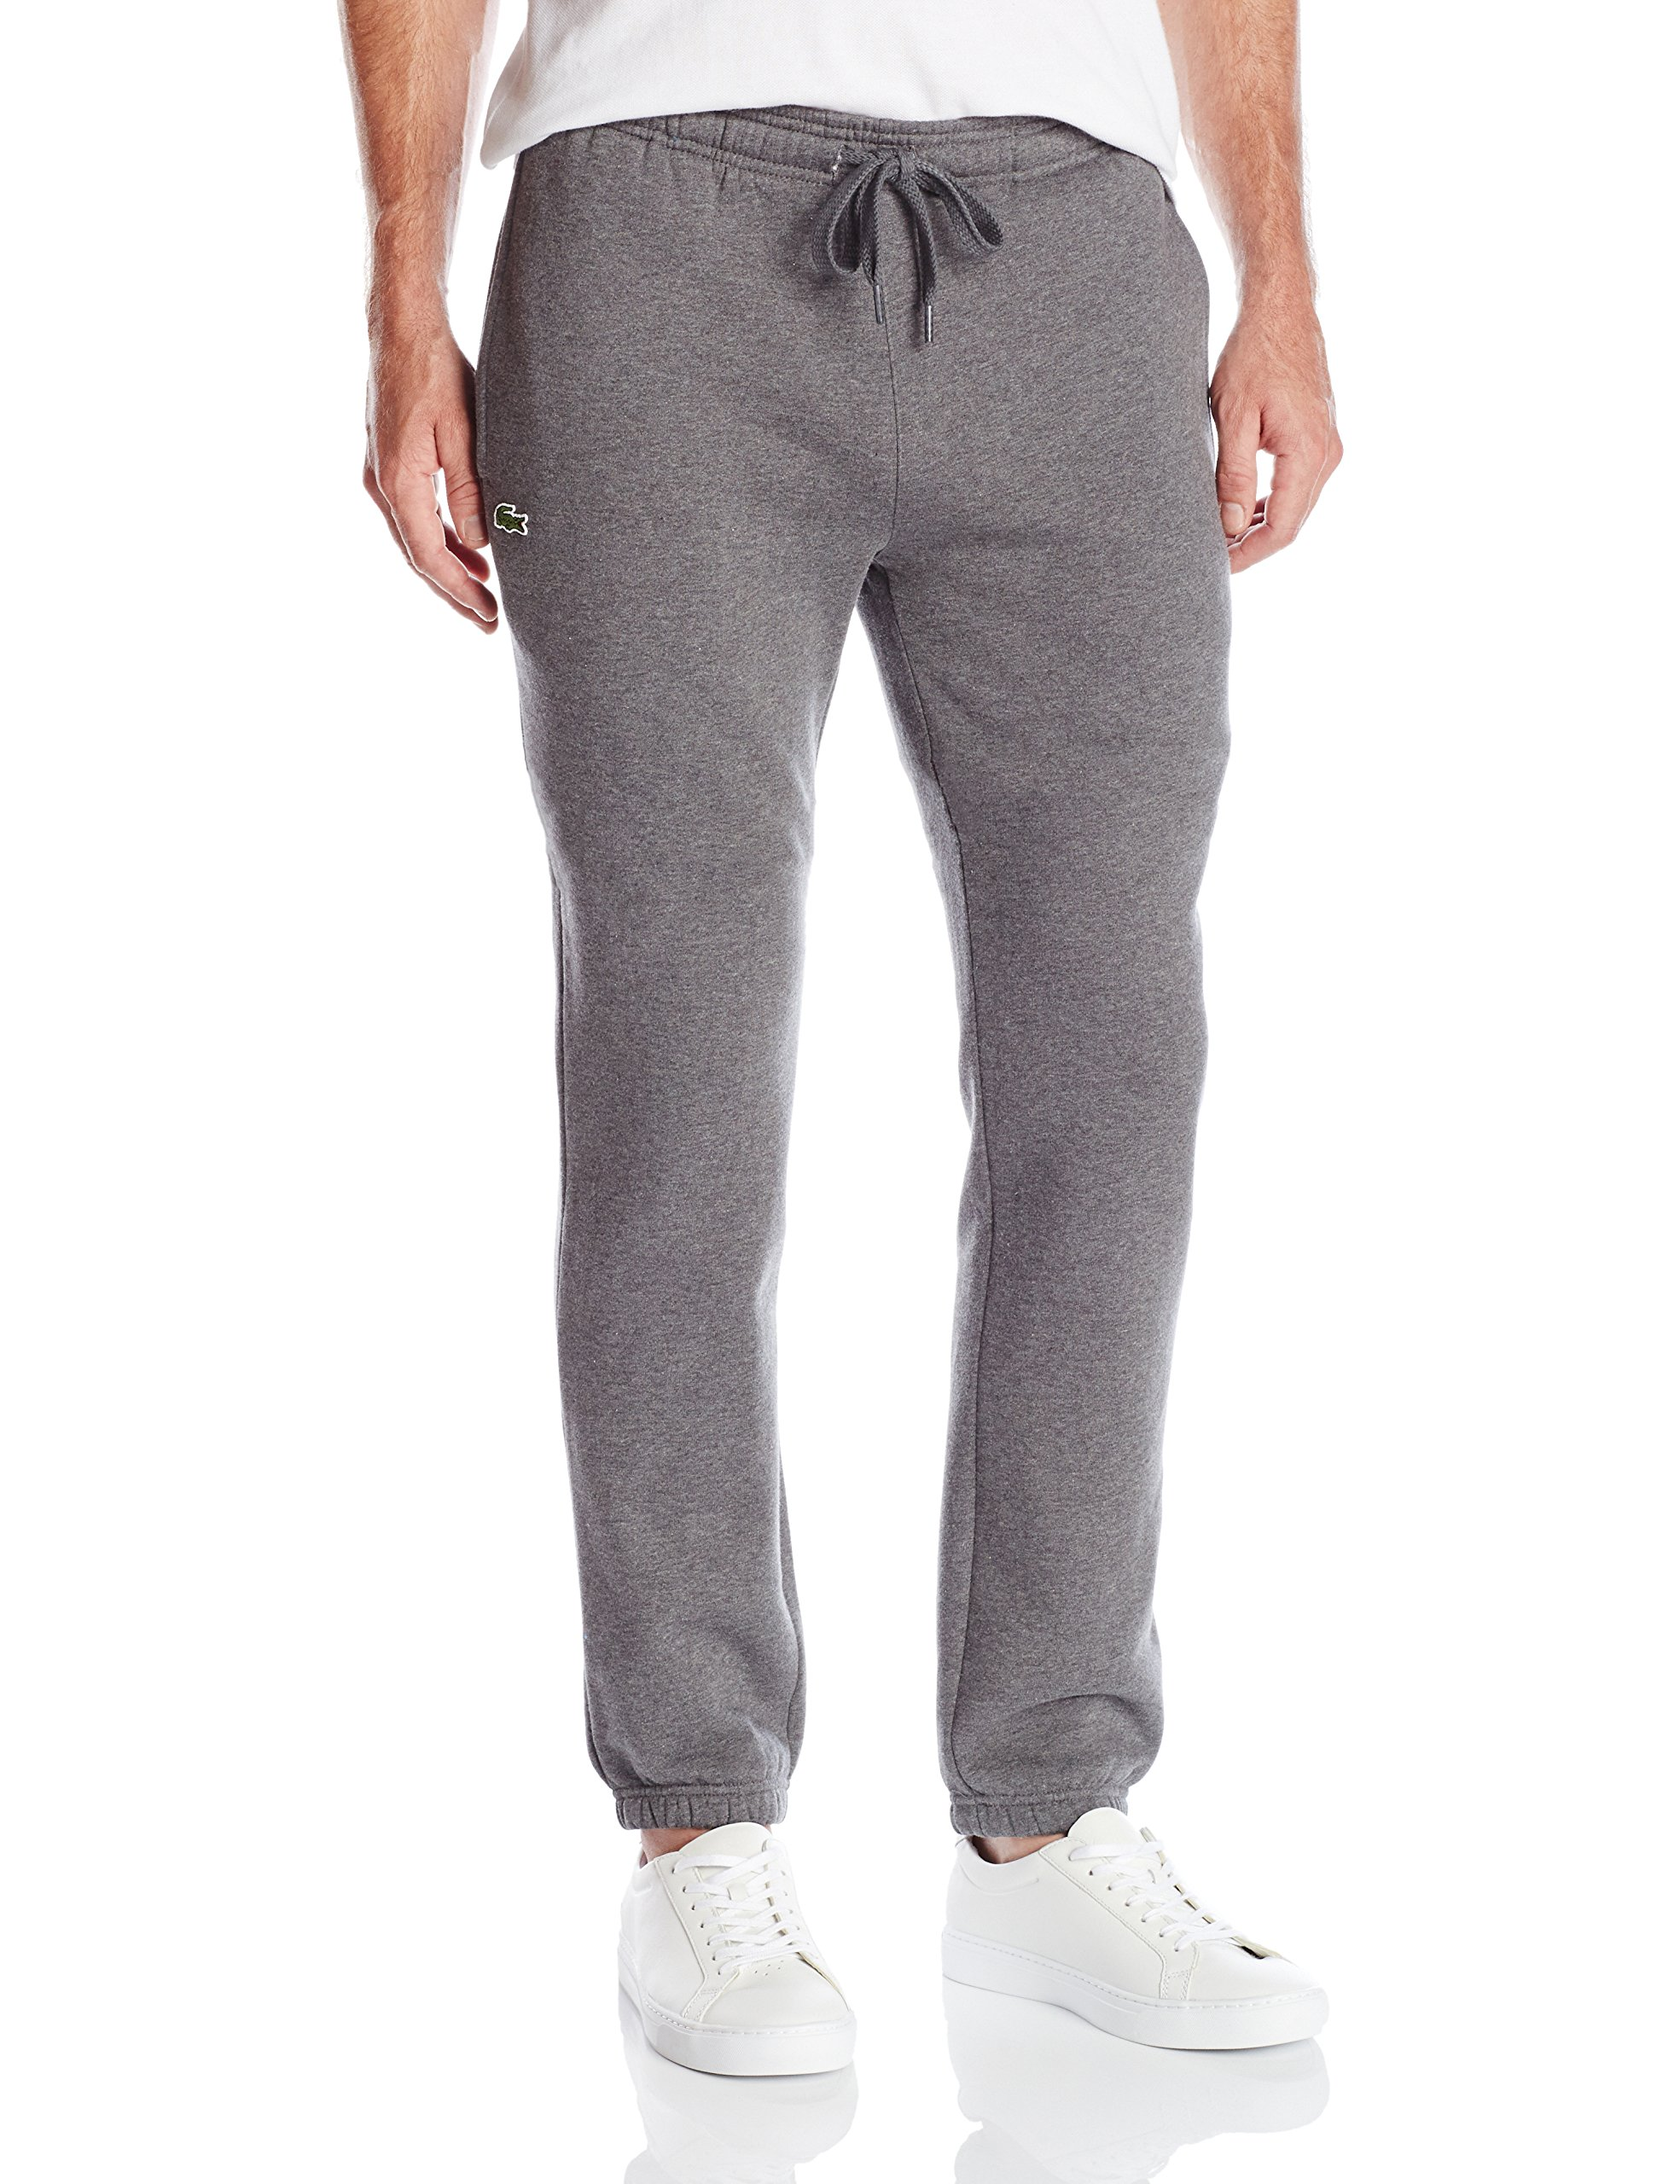 Lacoste Men's Tennis Training Sport Fleece Pant with Elastic Leg Opening, Pitch Gray, 9